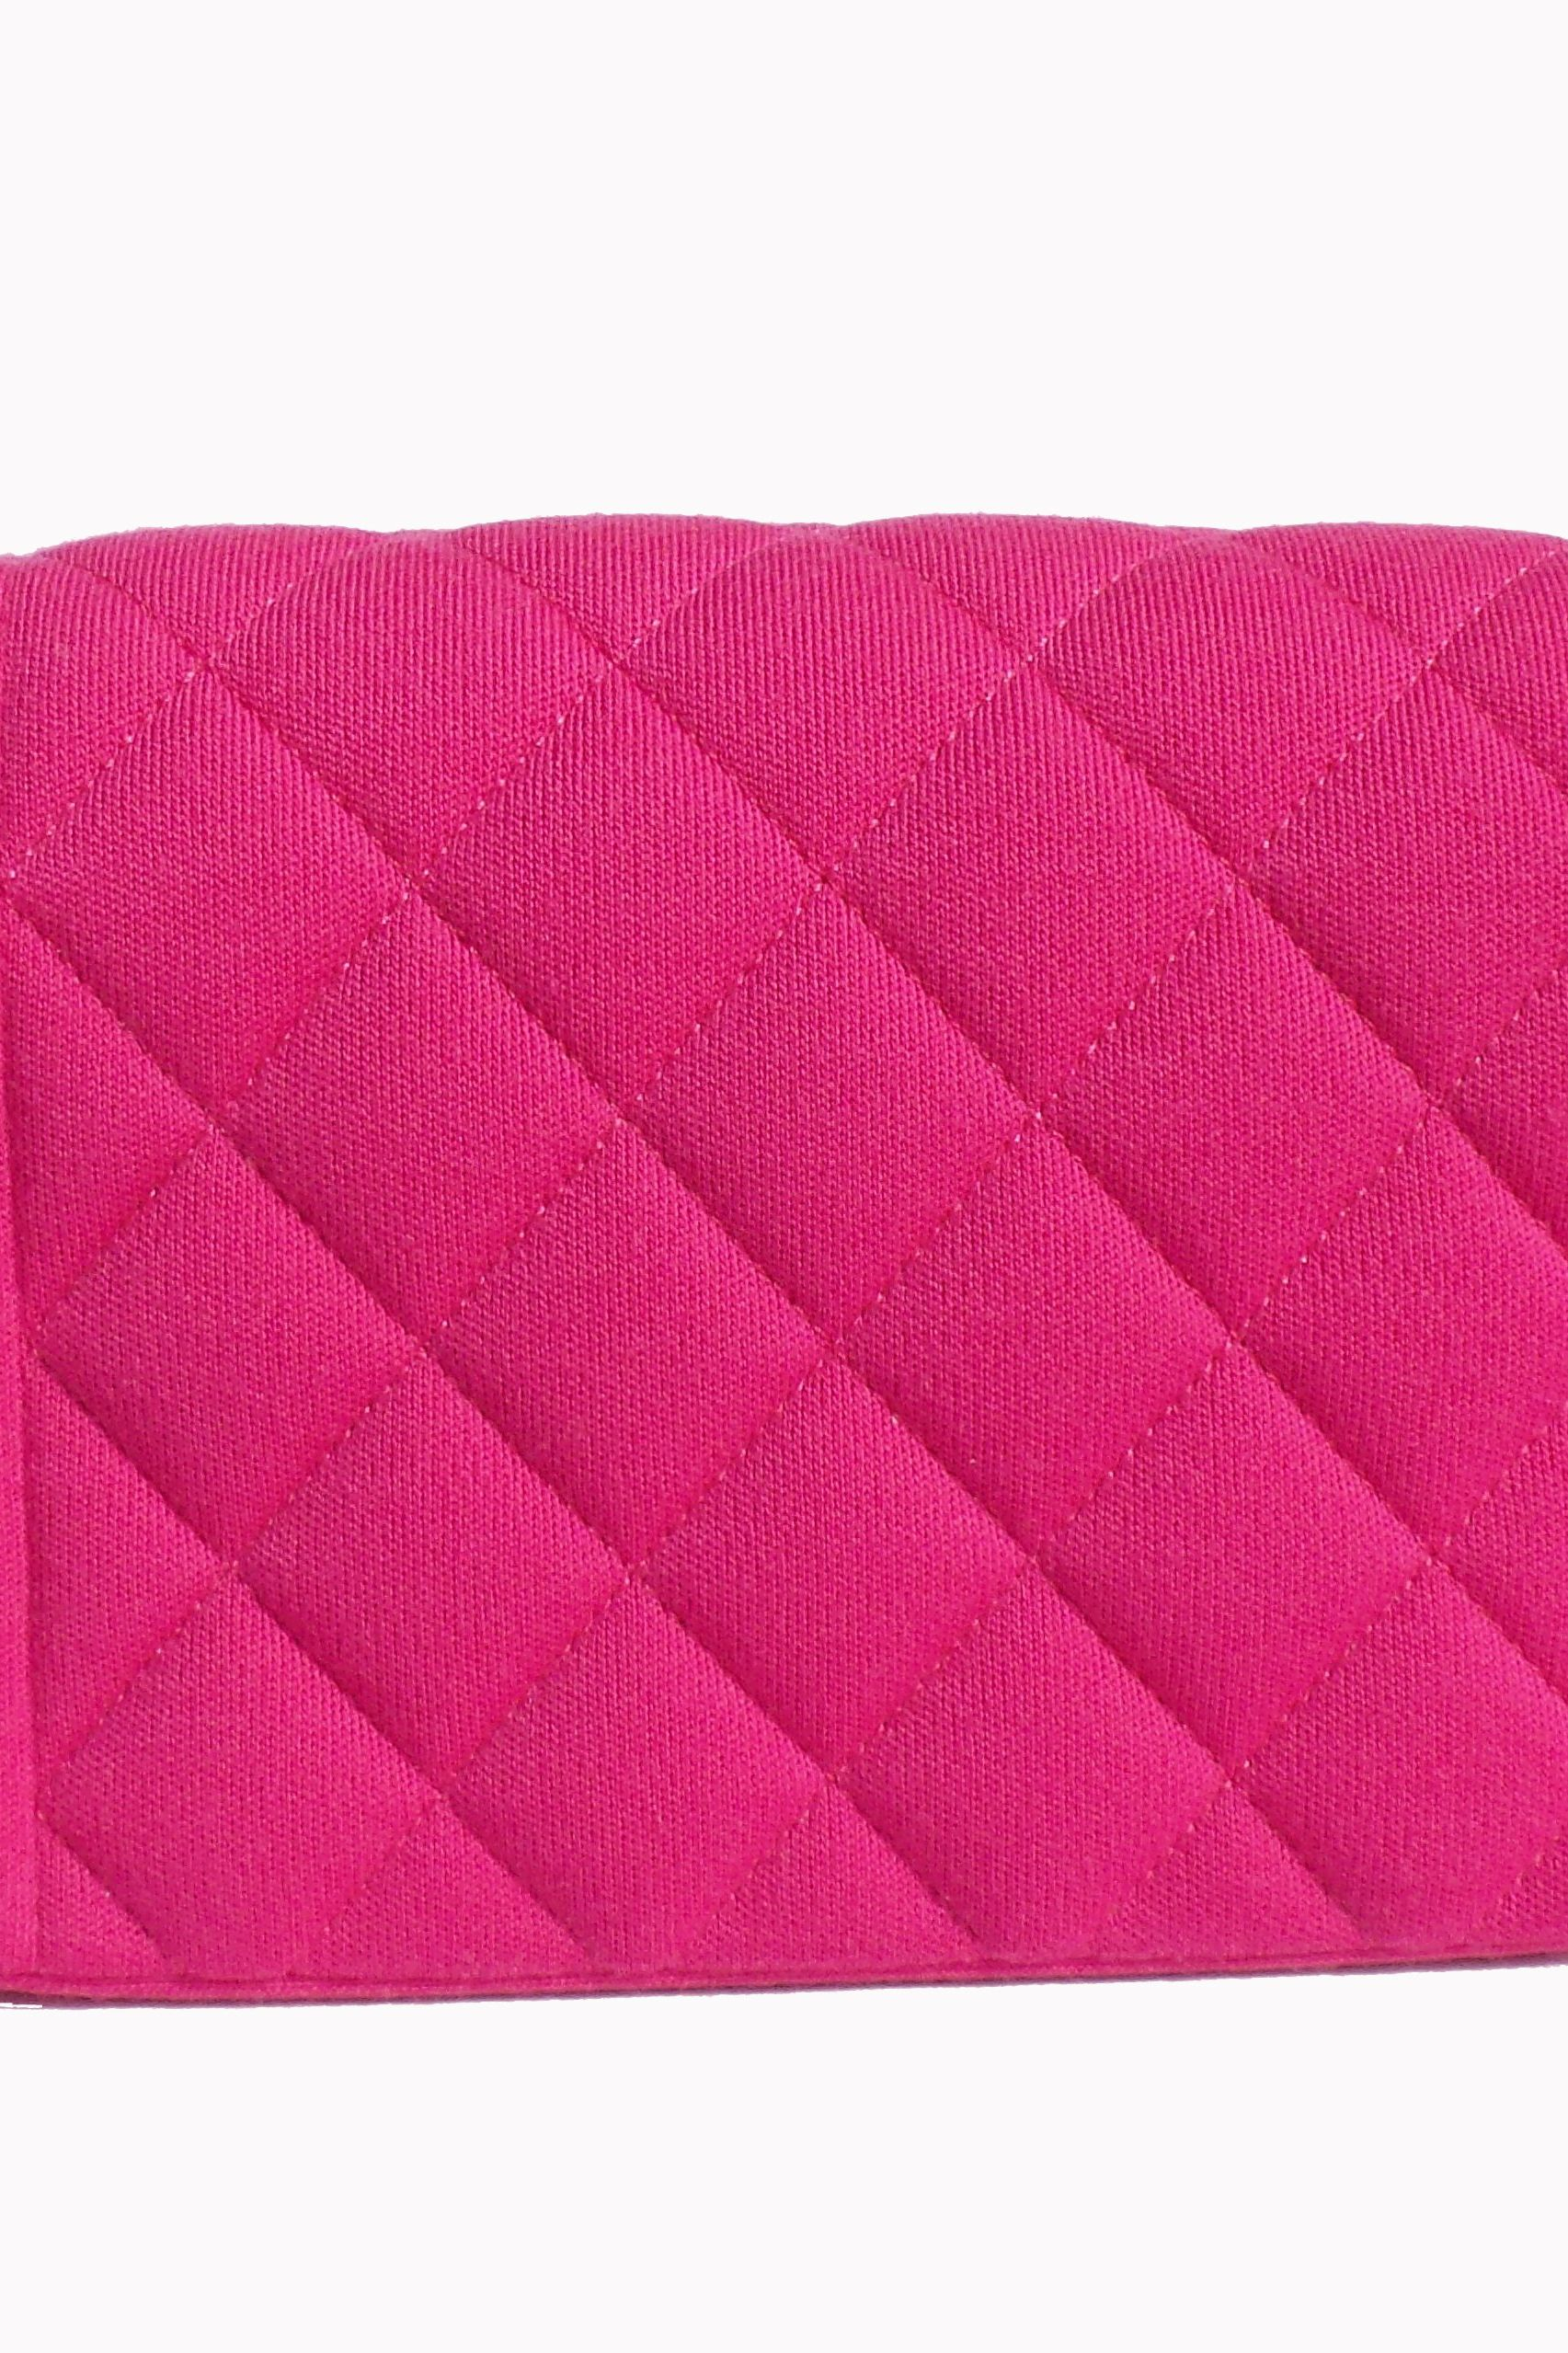 Chanel Hot Pink Quilted Jersey Mini Flap Bag 3